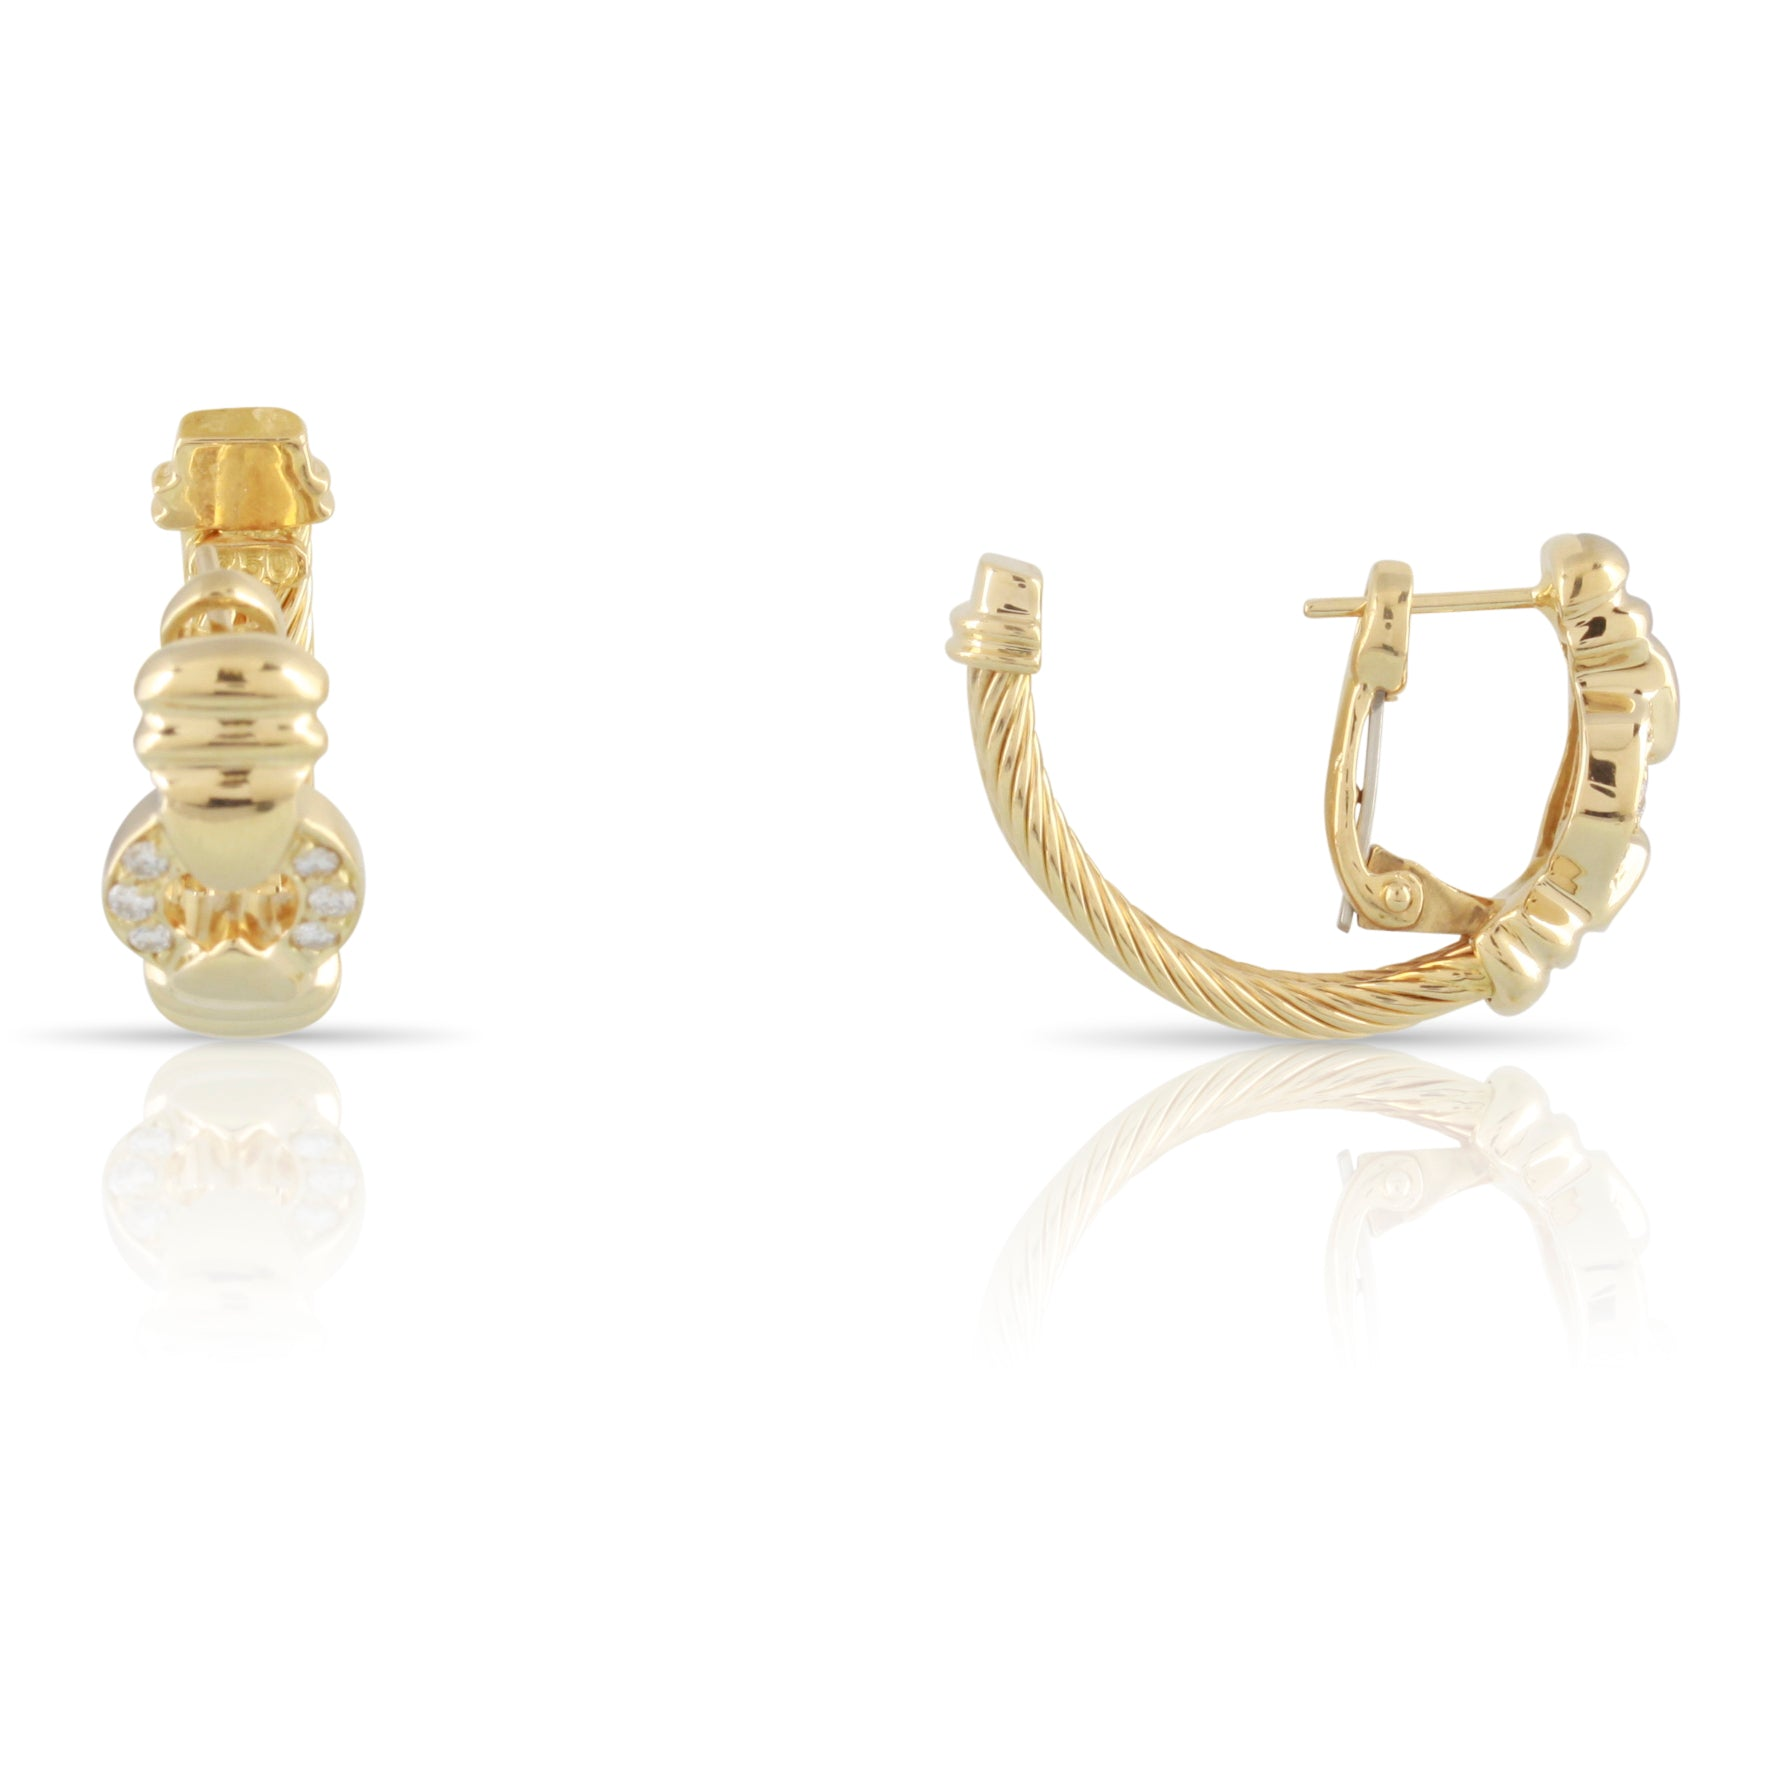 shop elettra image earrings jewellery products gold hoop product